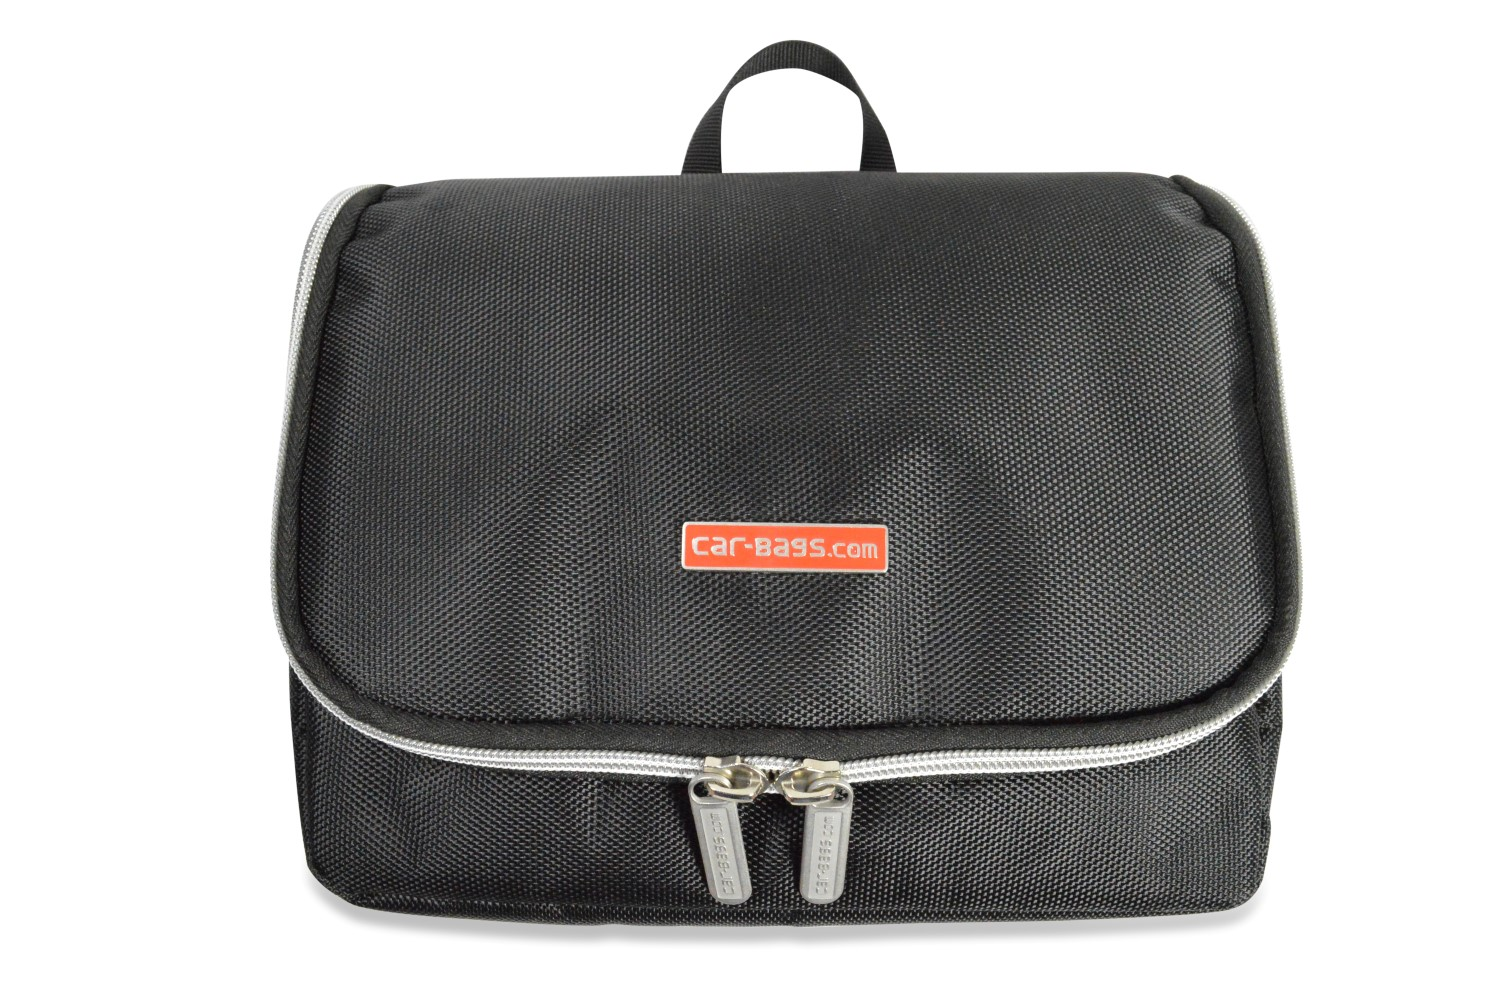 Travel Bags Tailored For Your Car